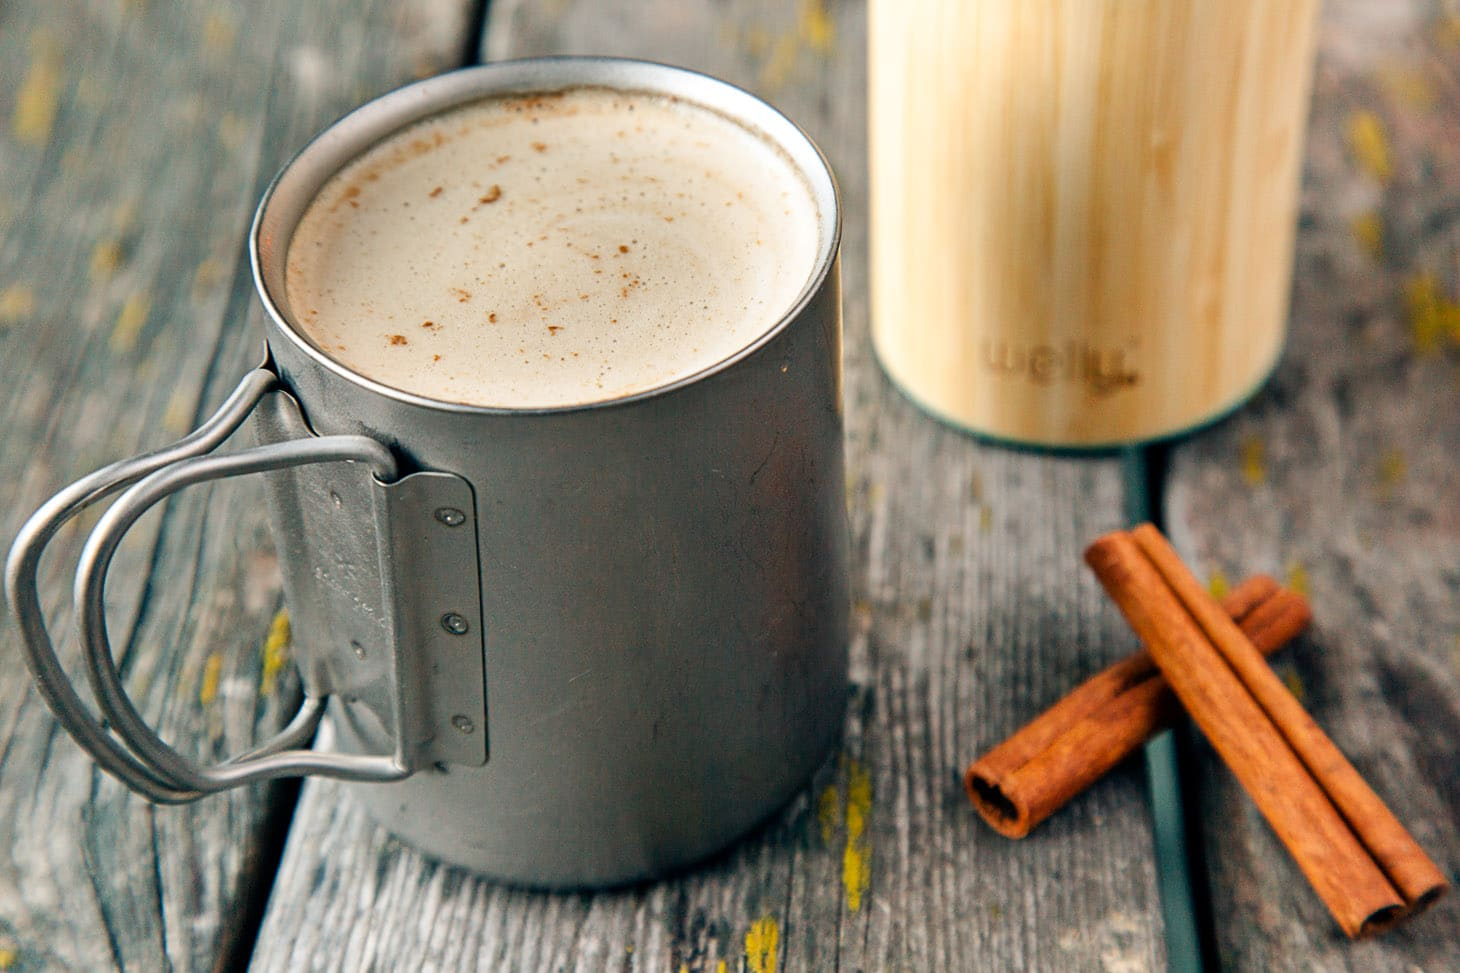 Cinnamon Coconut Latte in a camping mug on a wooden table.